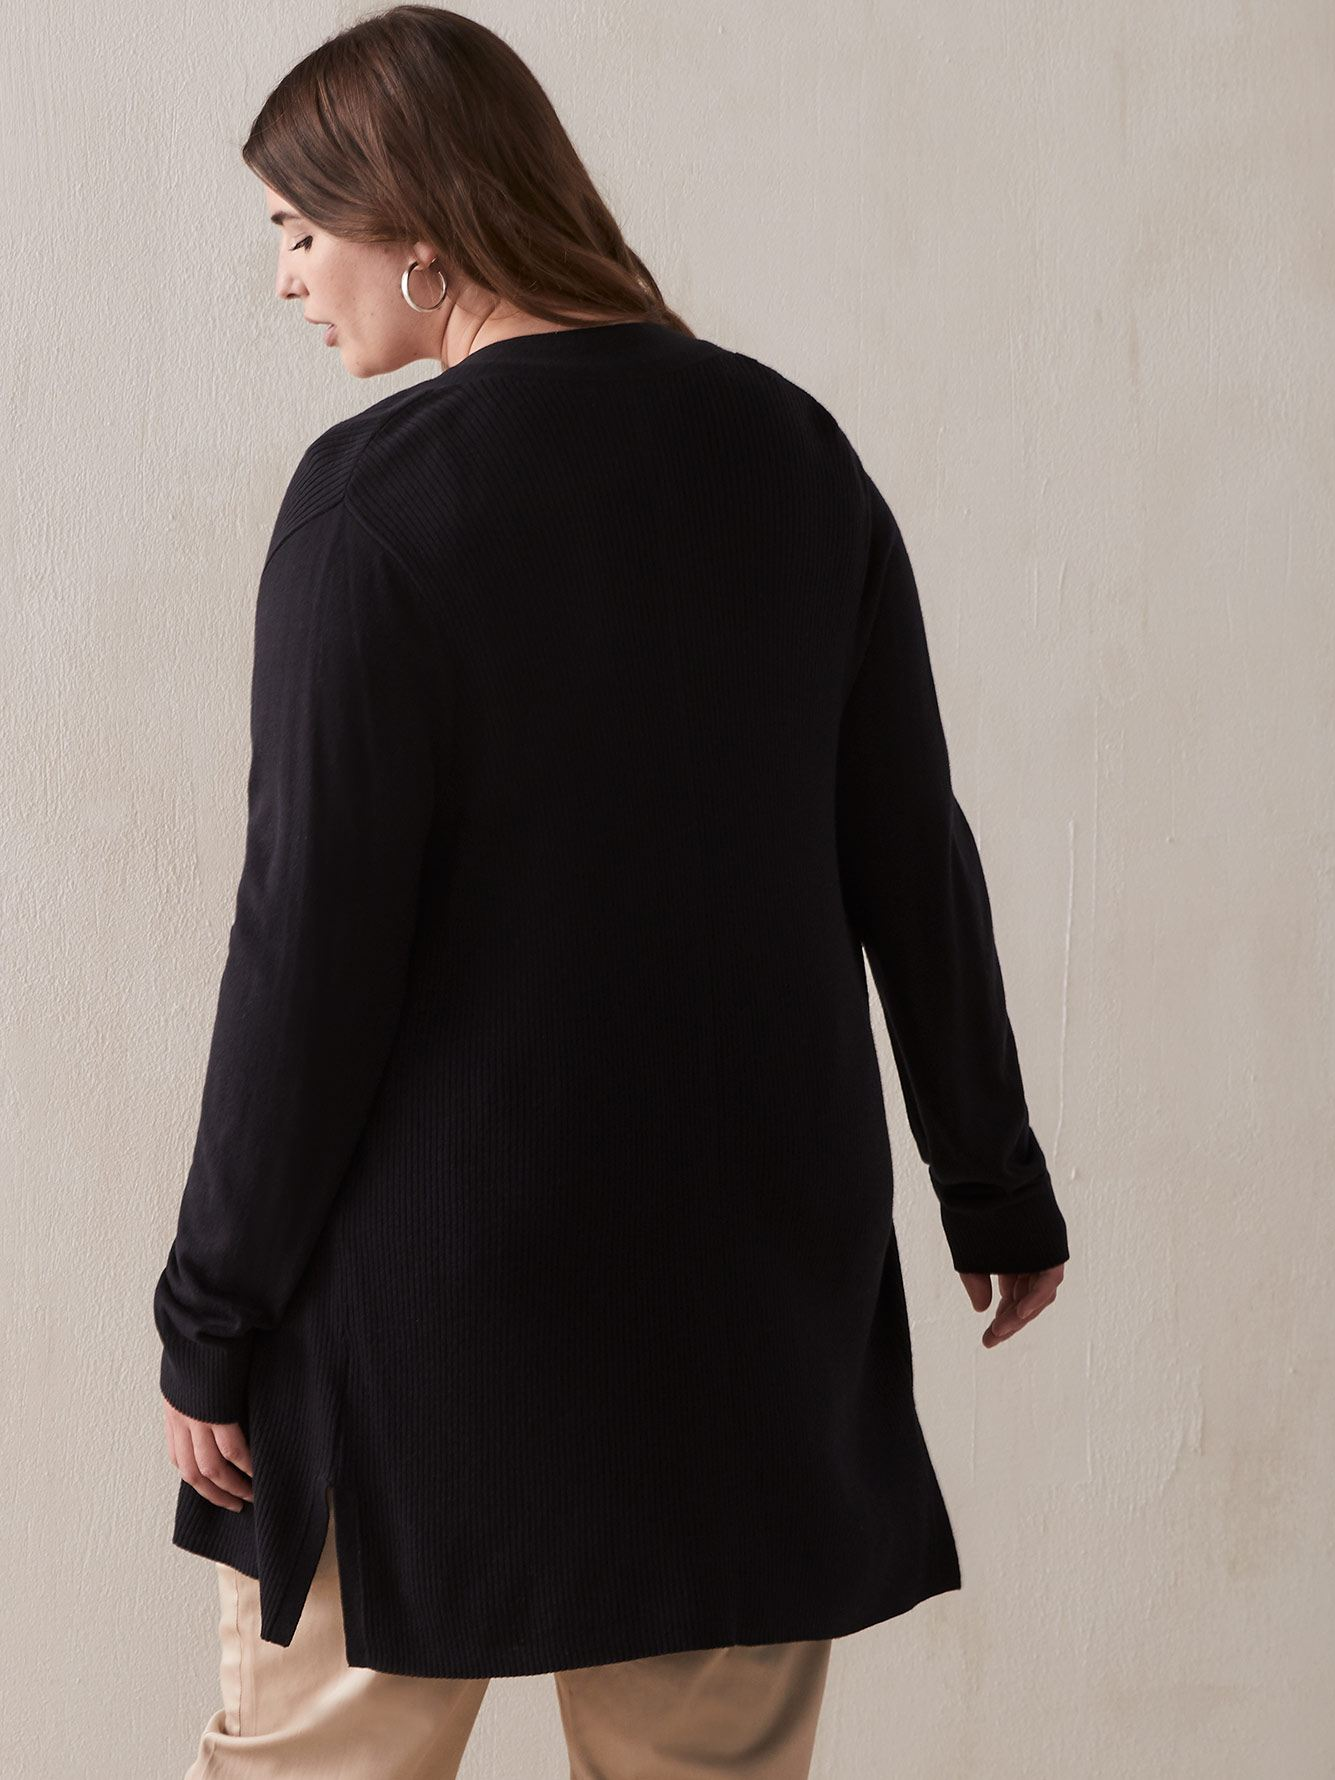 Long Black Cardigan with Pointelle Details